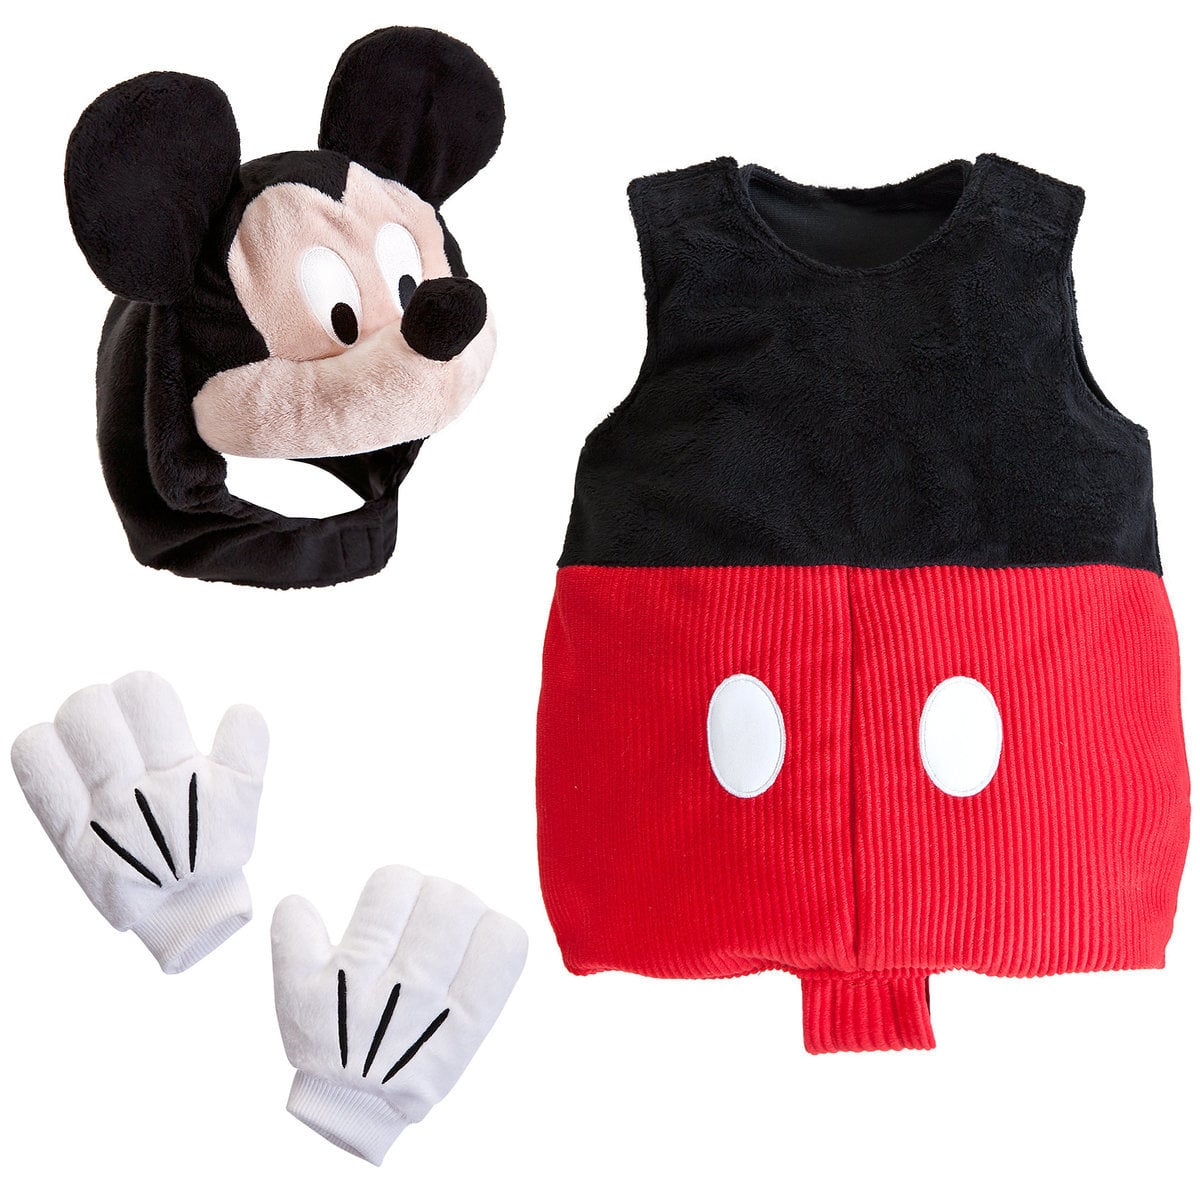 Top 25 Disney Gift Ideas for Babies featured by top US Disney blogger, Marcie and the Mouse: Mickey Mouse costume for babies